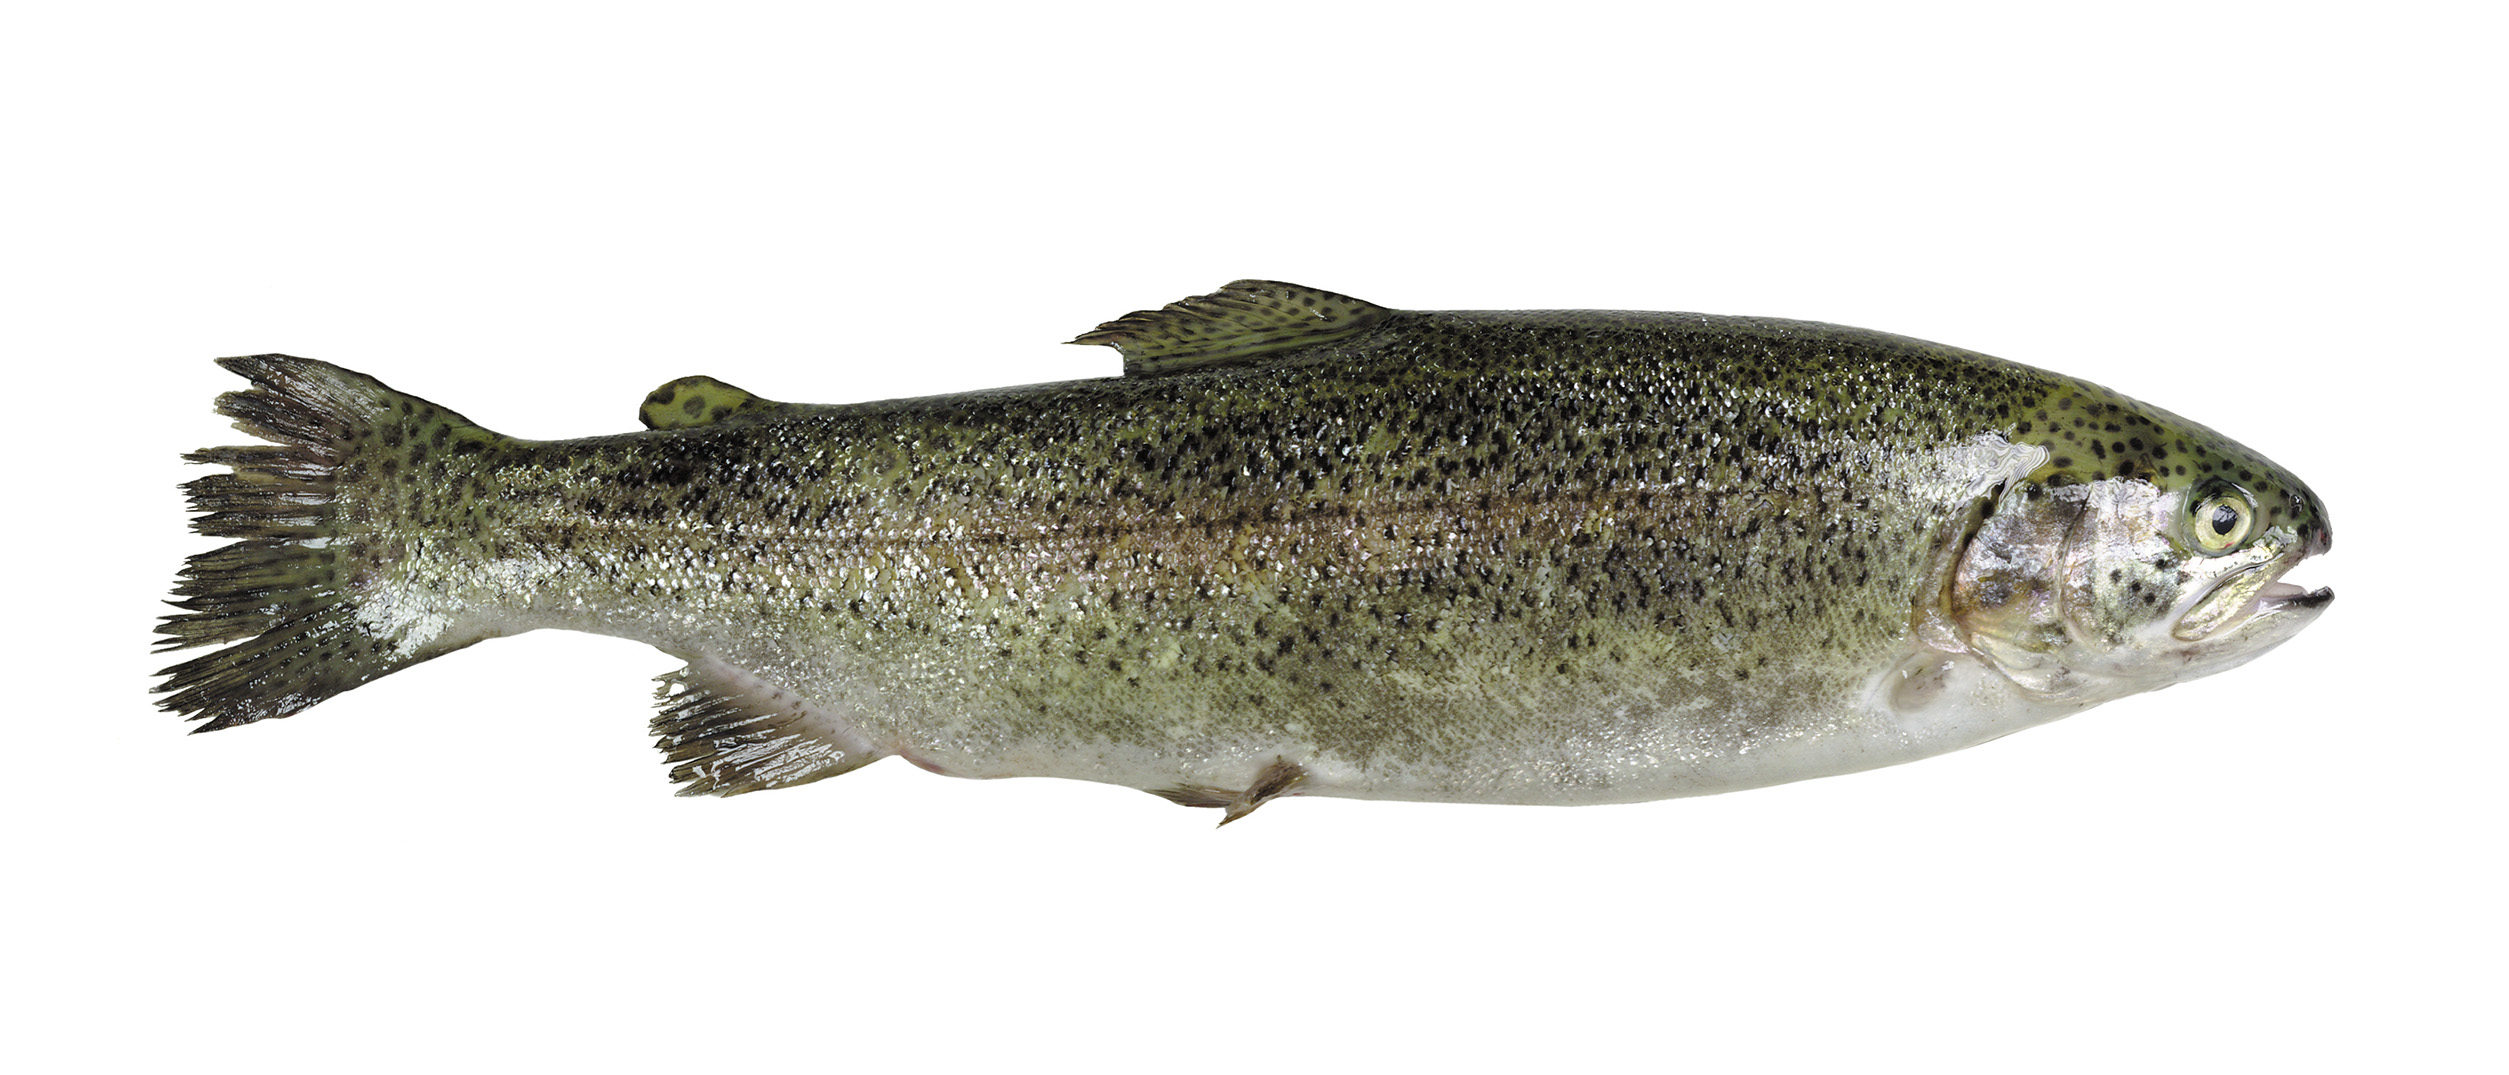 STEELHEAD TROUT WHOLE FISH Image